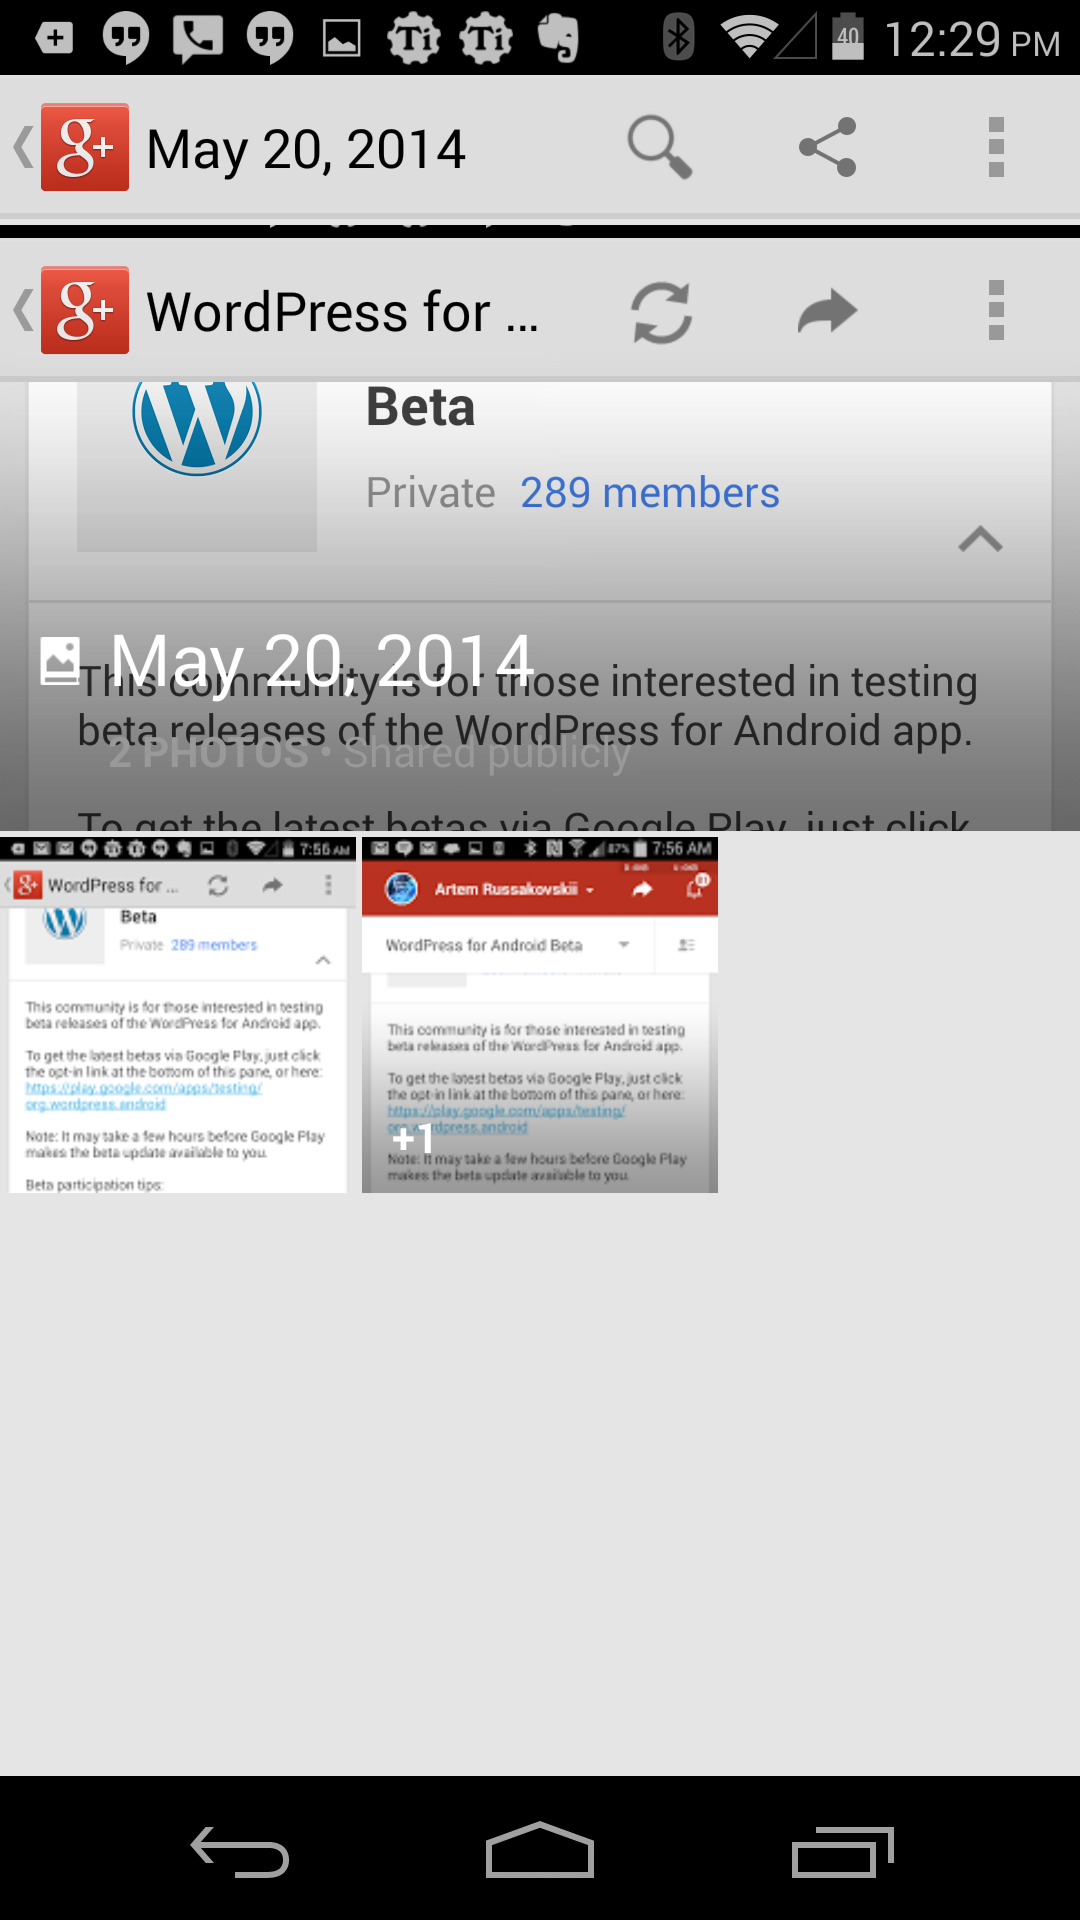 [APK Download] Google+ App Gets A Big Update To v4.4 With A New UI, Auto Awesome Stories, And More [Updated]